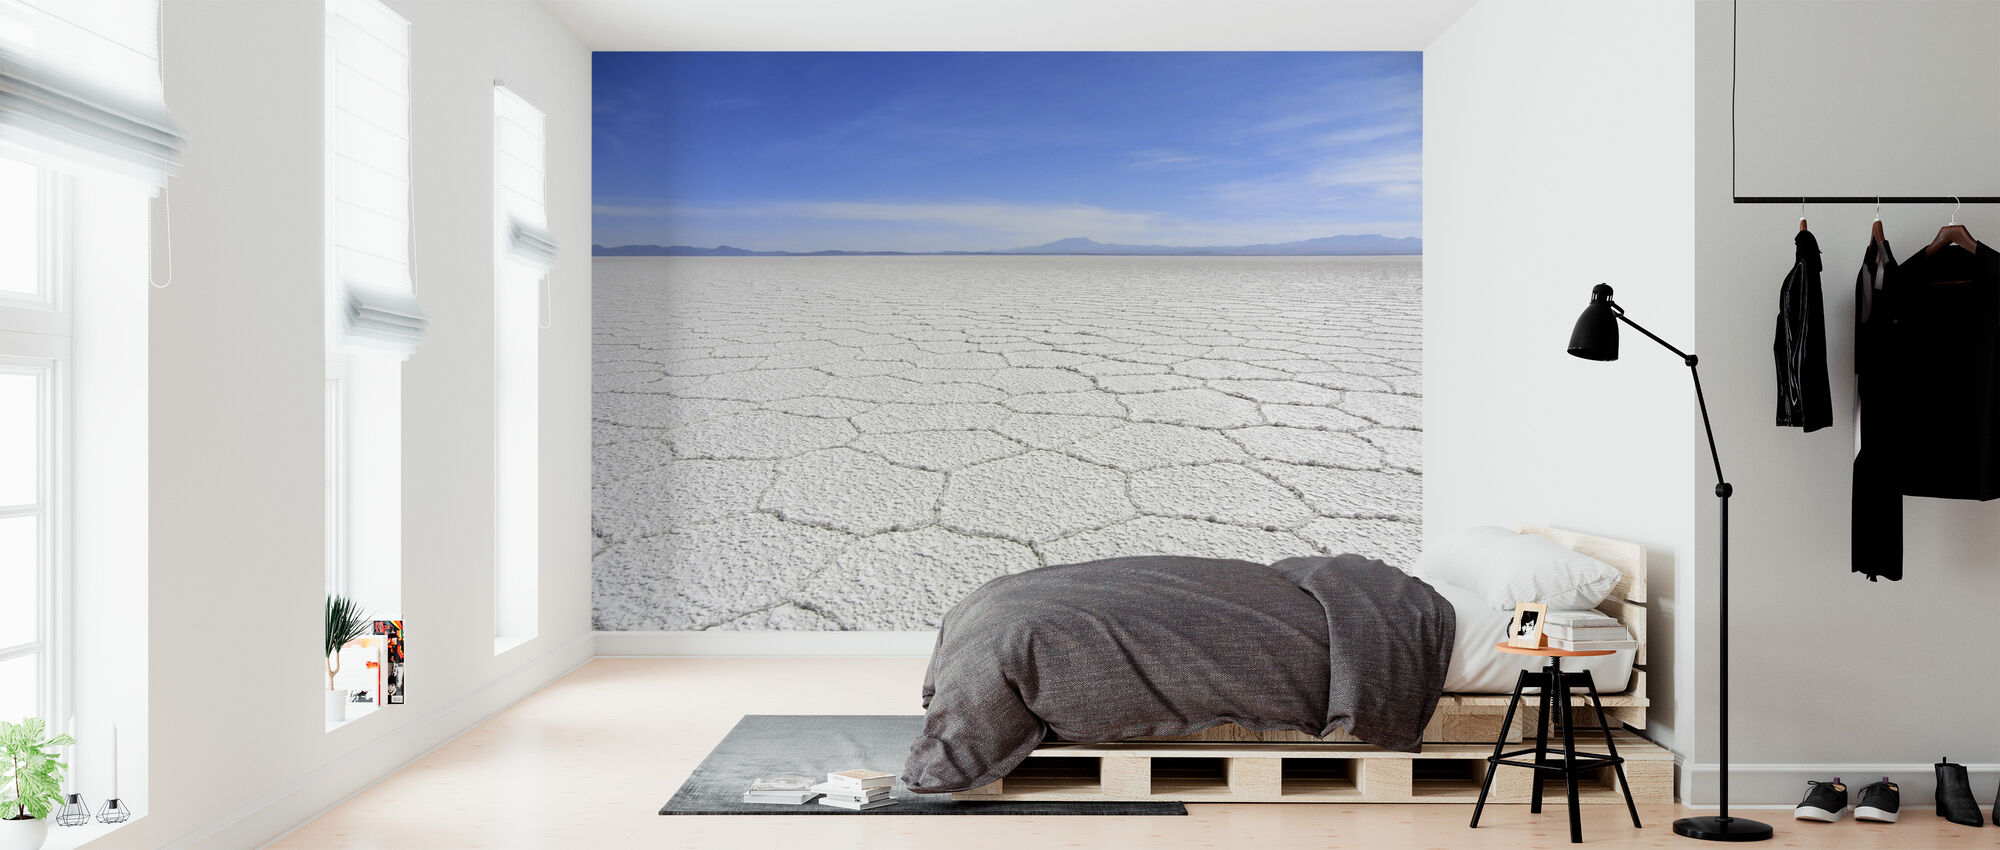 Salt Desert - Wallpaper - Bedroom